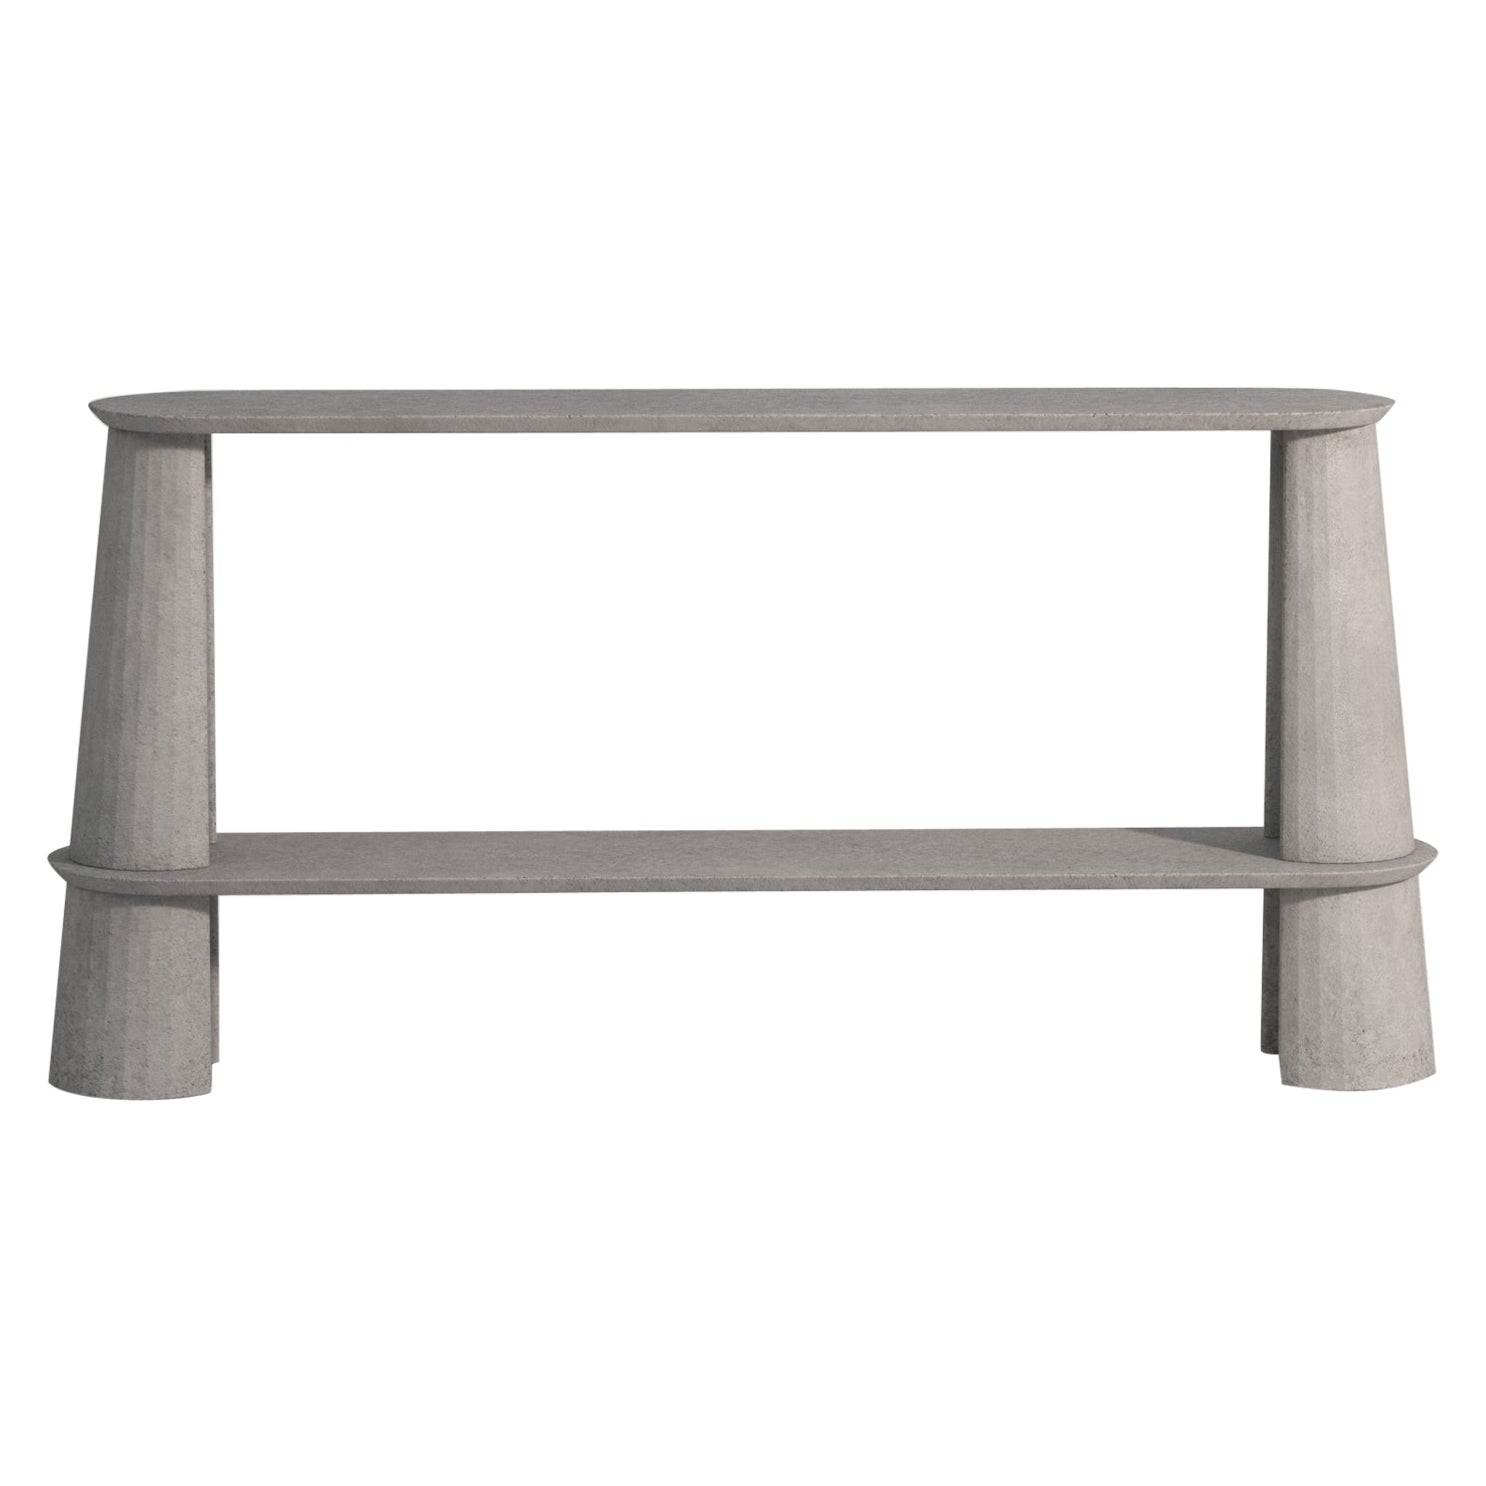 21st Century Studio Irvine Fusto Side Console Table Concrete Cement Silver Grey